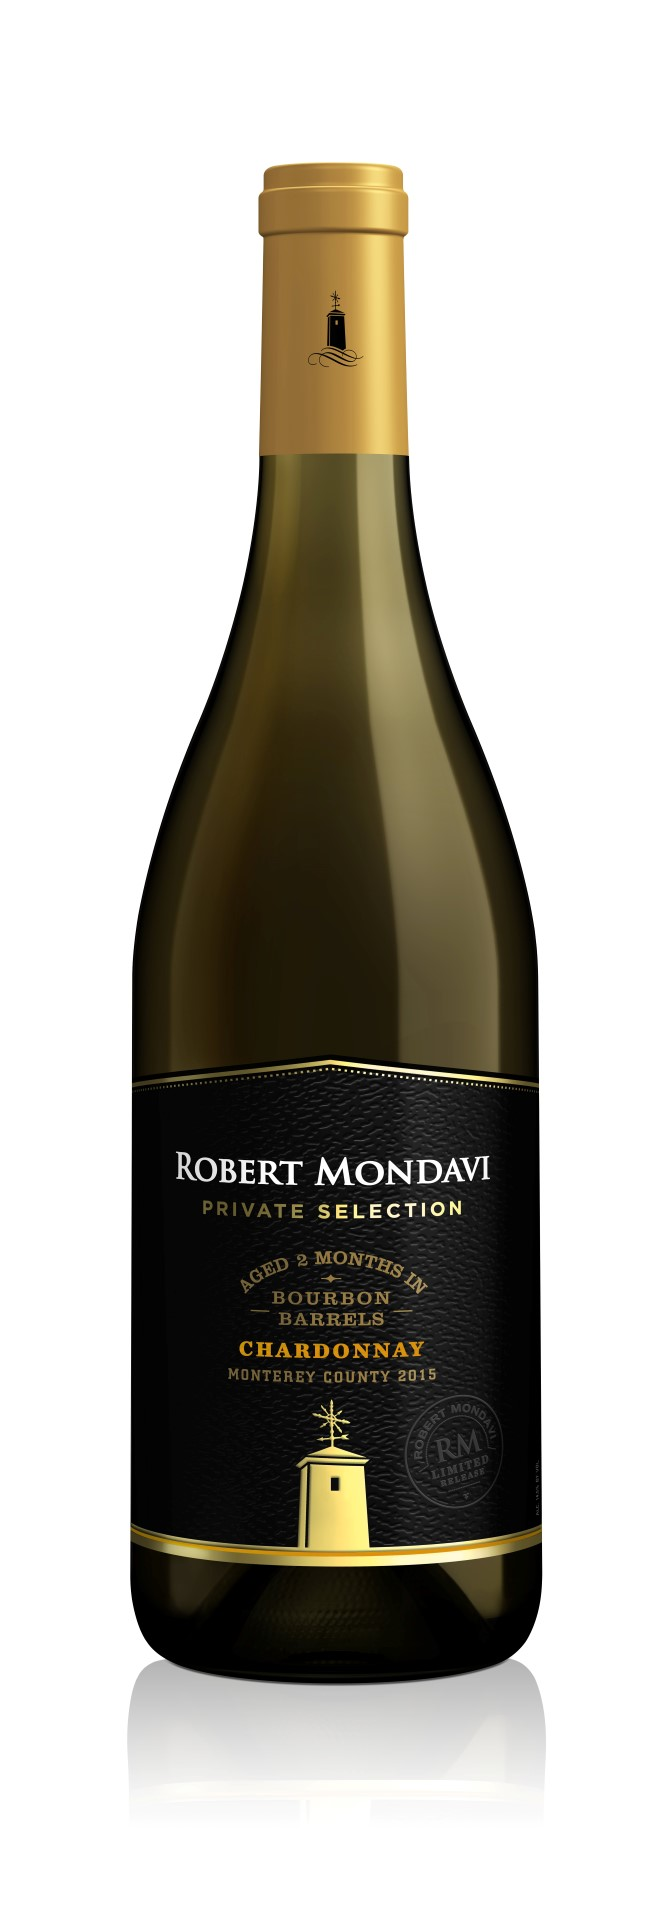 2015 Robert Mondavi Private Selection Chardonnay Aged in Bourbon Barrels